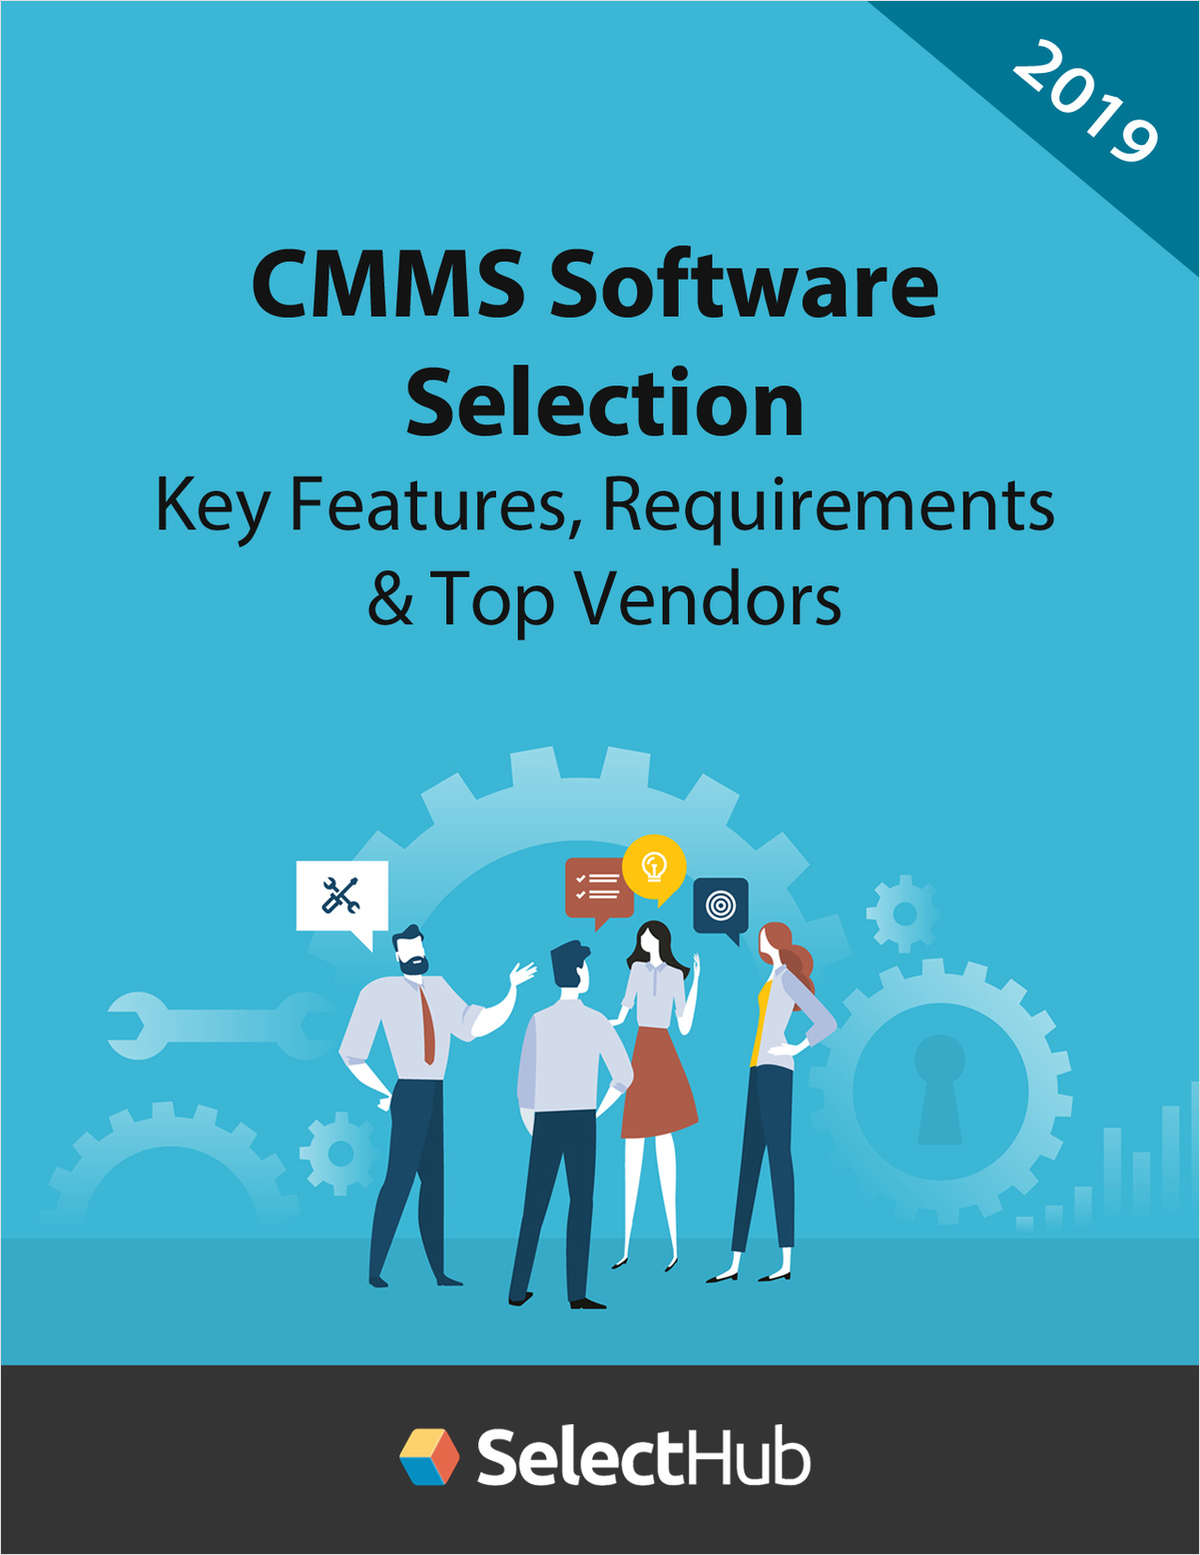 CMMS Software Selection: Key Features, Requirements & Top Vendors